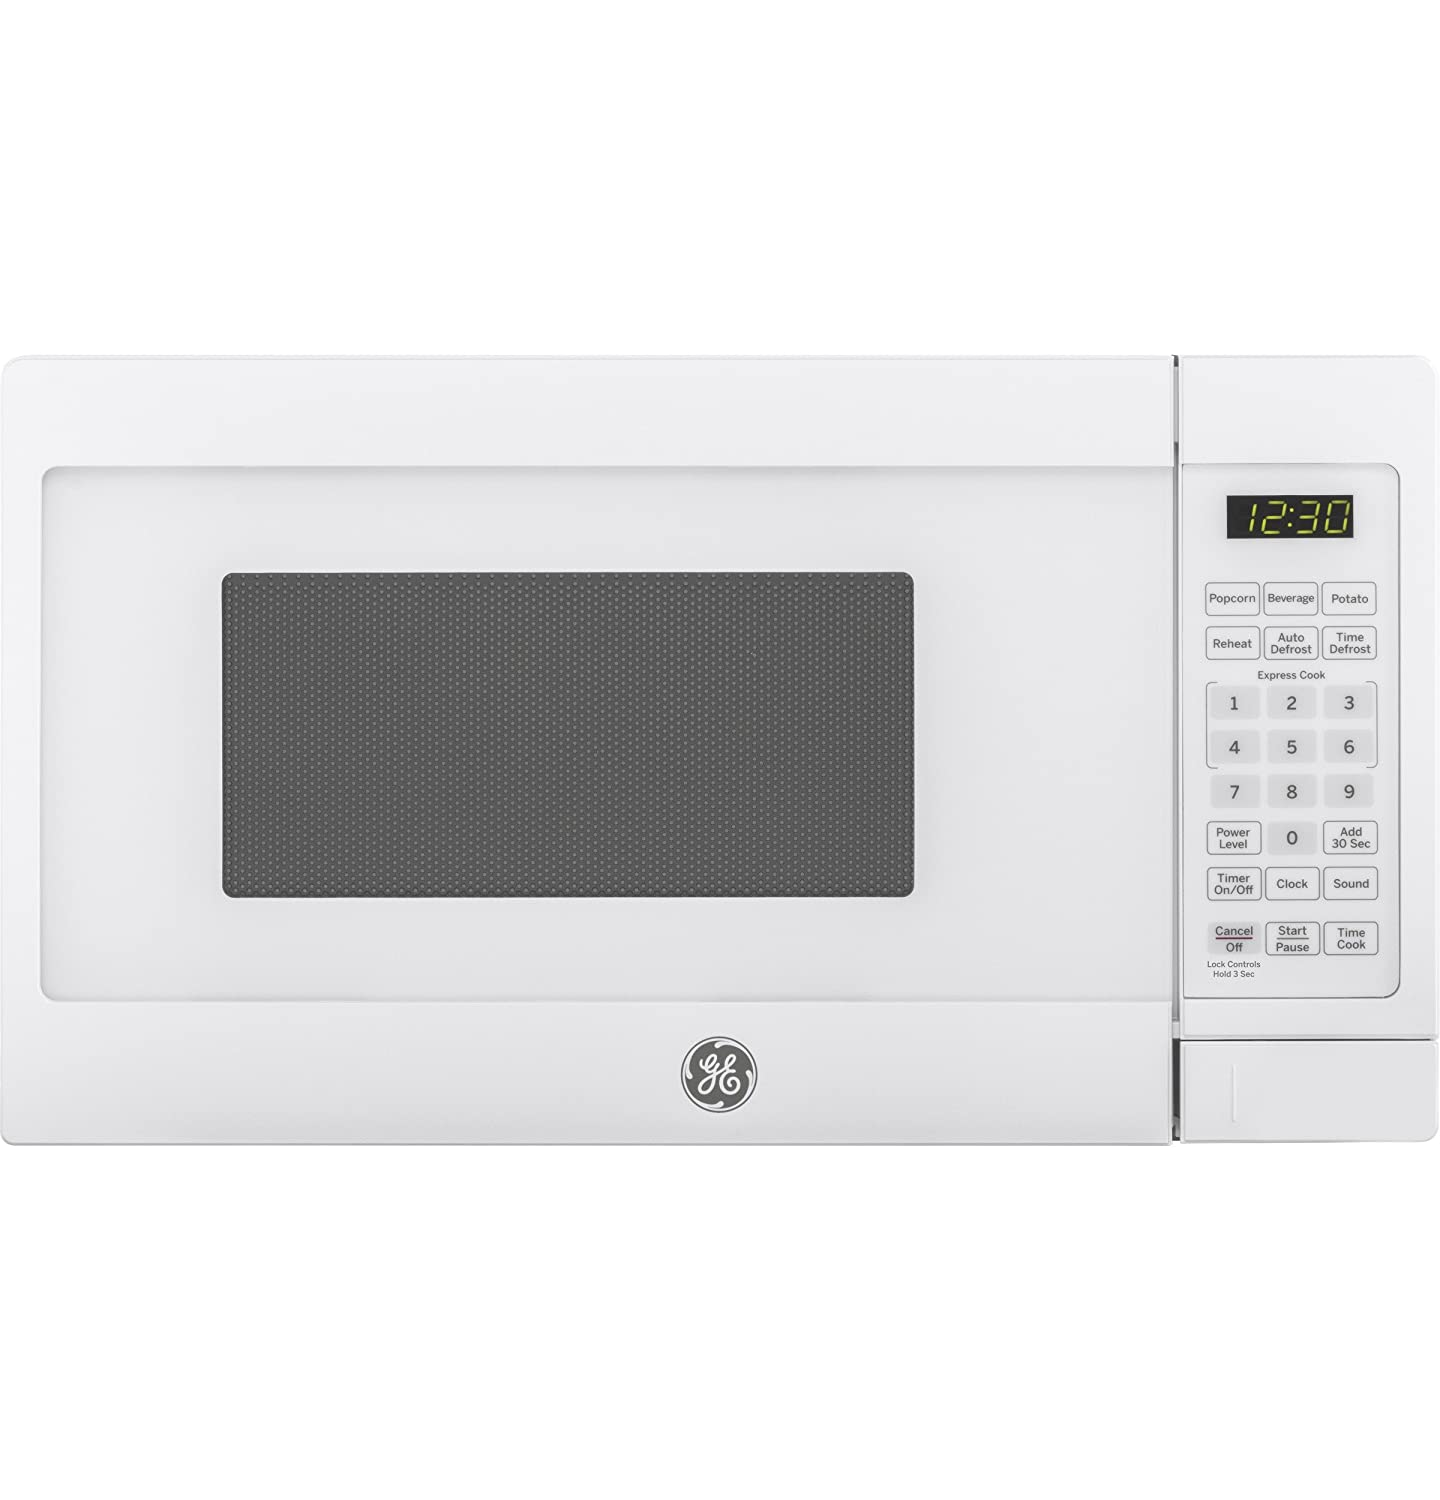 GE JES1072DMWW 0.7 cu. ft. Capacity Countertop Microwave Oven, White GE Appliances